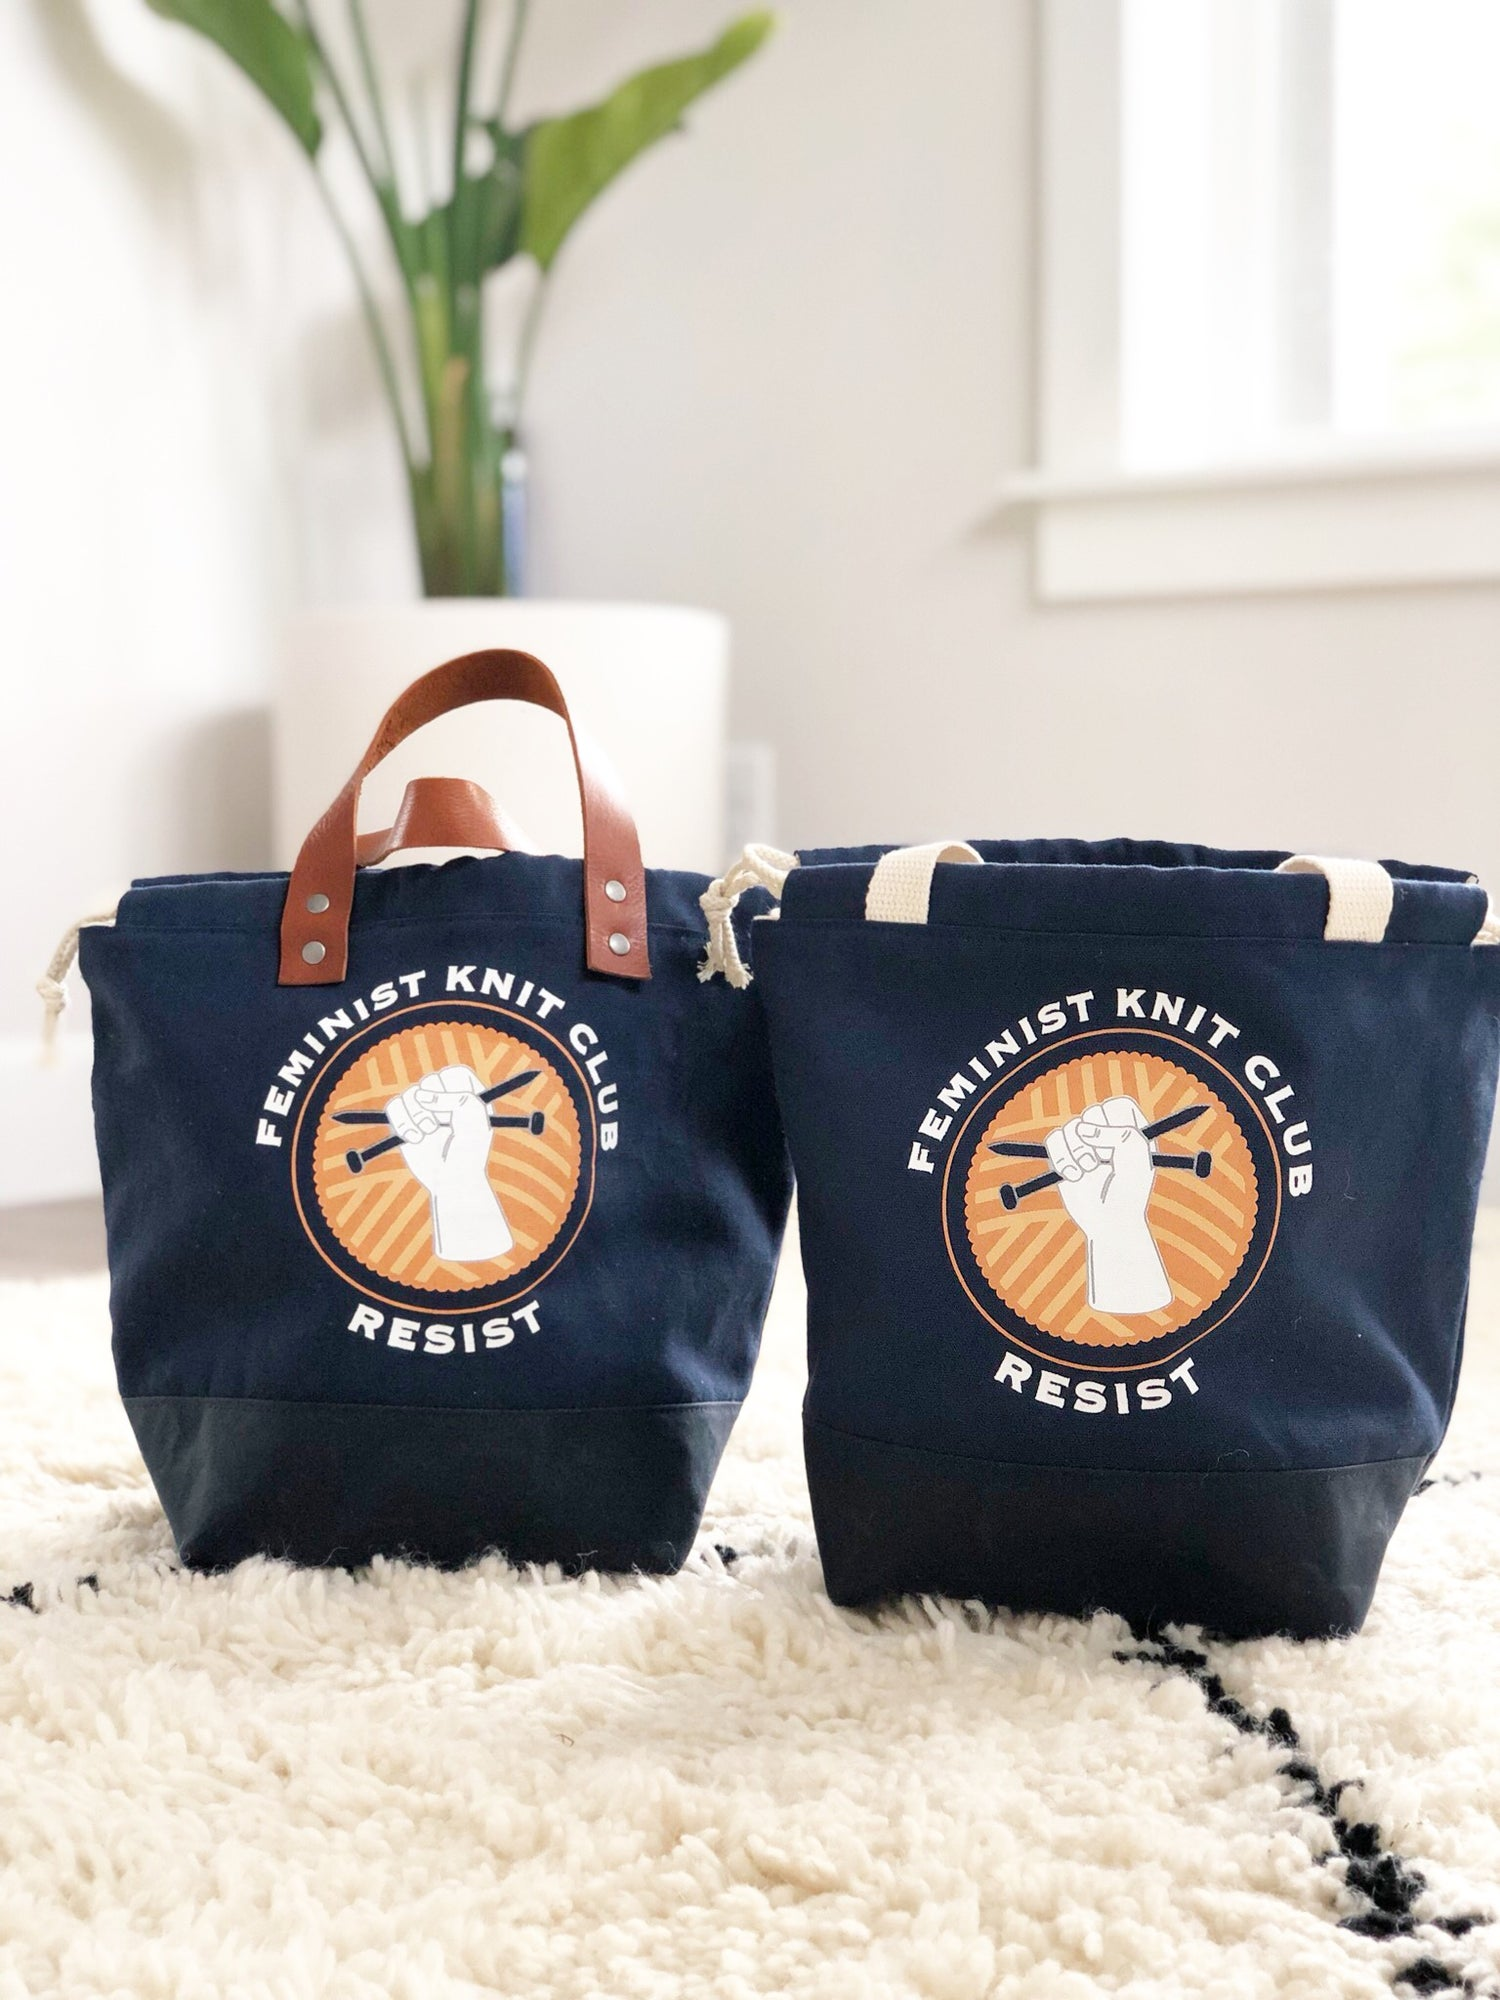 Image of Feminist Knit Club Project Bags